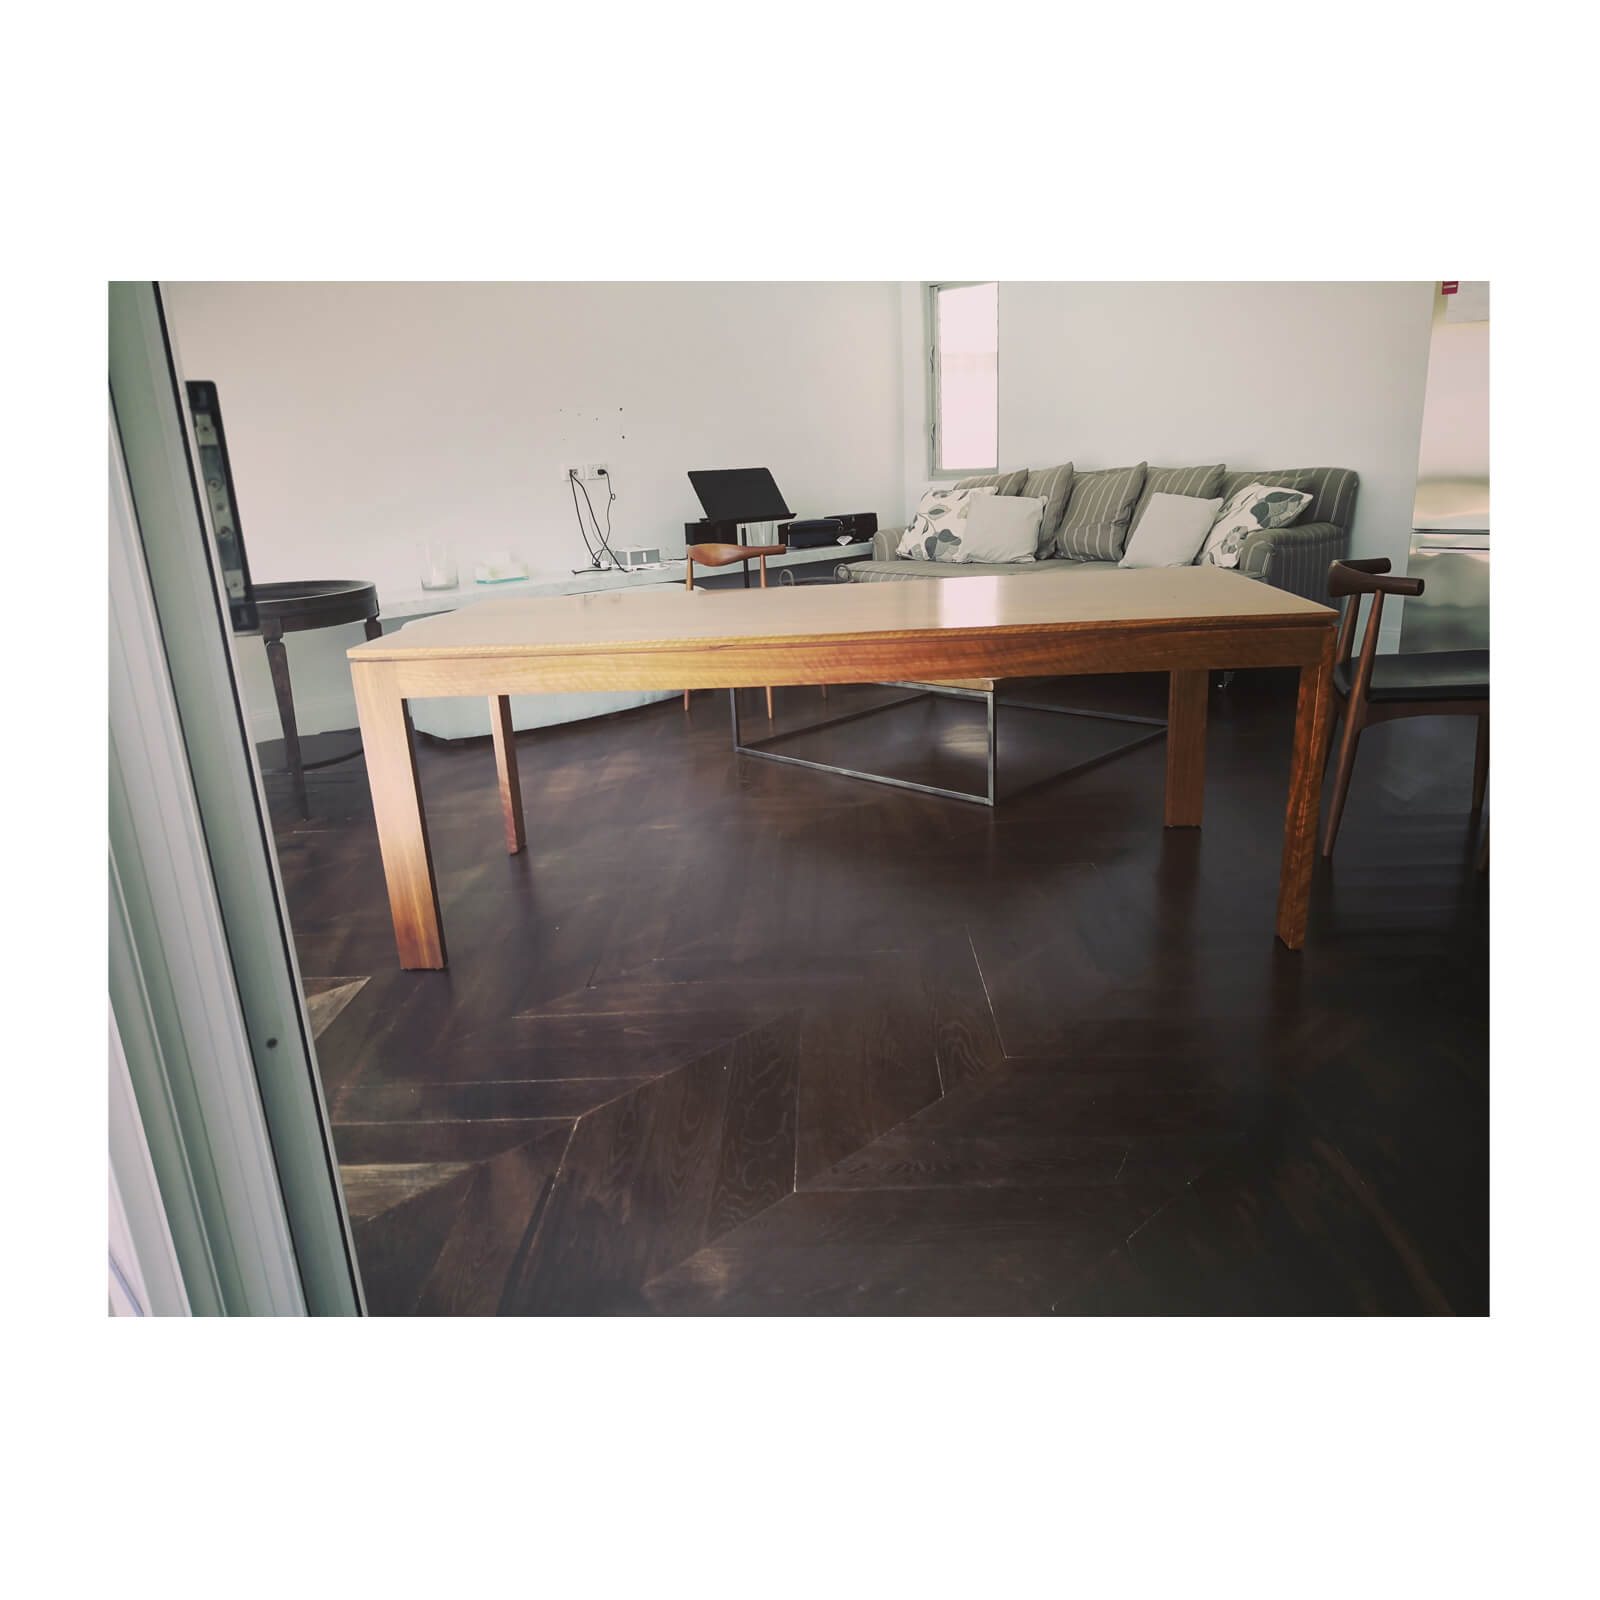 Max Sparrow Planet Furniture Dining Table in Spotted Gun